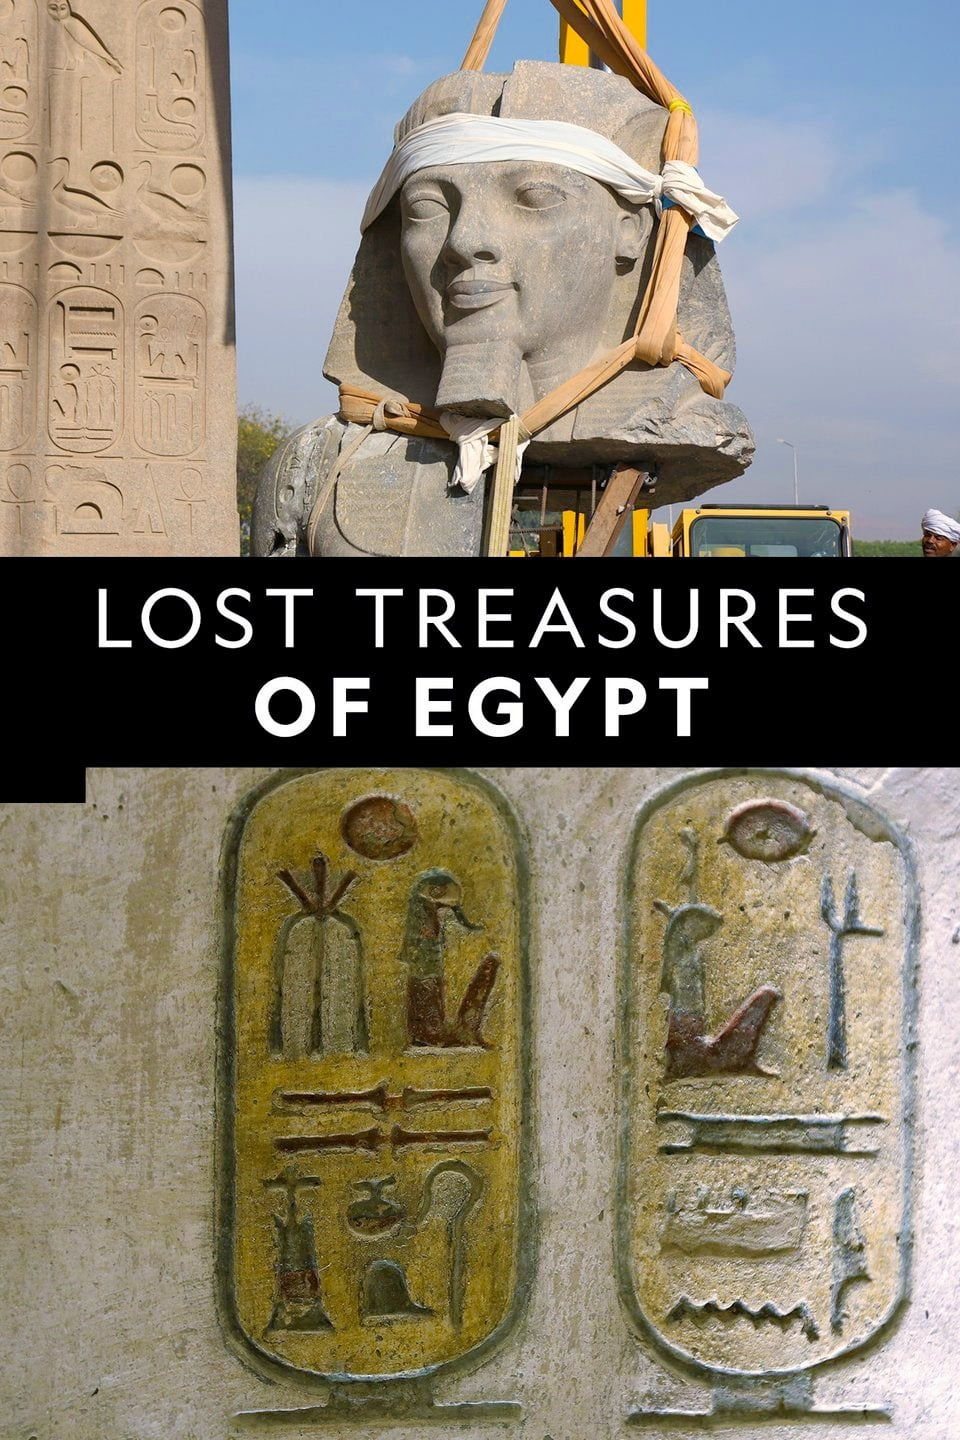 Lost Treasures of Egypt TV Shows About Egypt